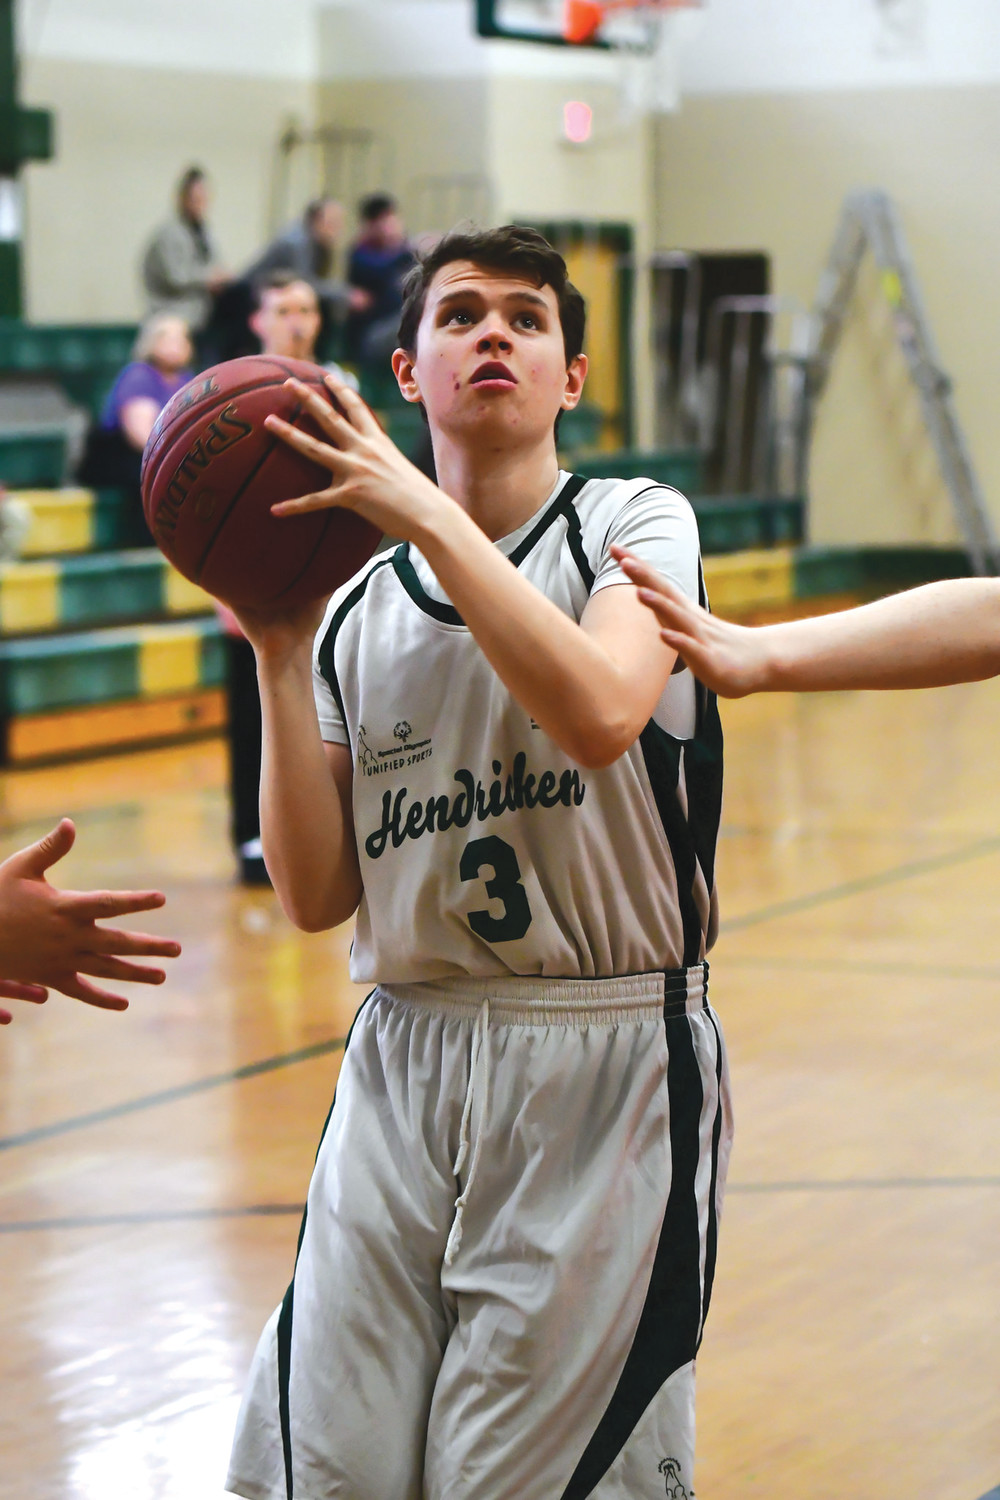 STANDING TOGETHER: Bishop Hendricken unified basketball player Josh  Tucker goes up for a shot during the 2018 season.